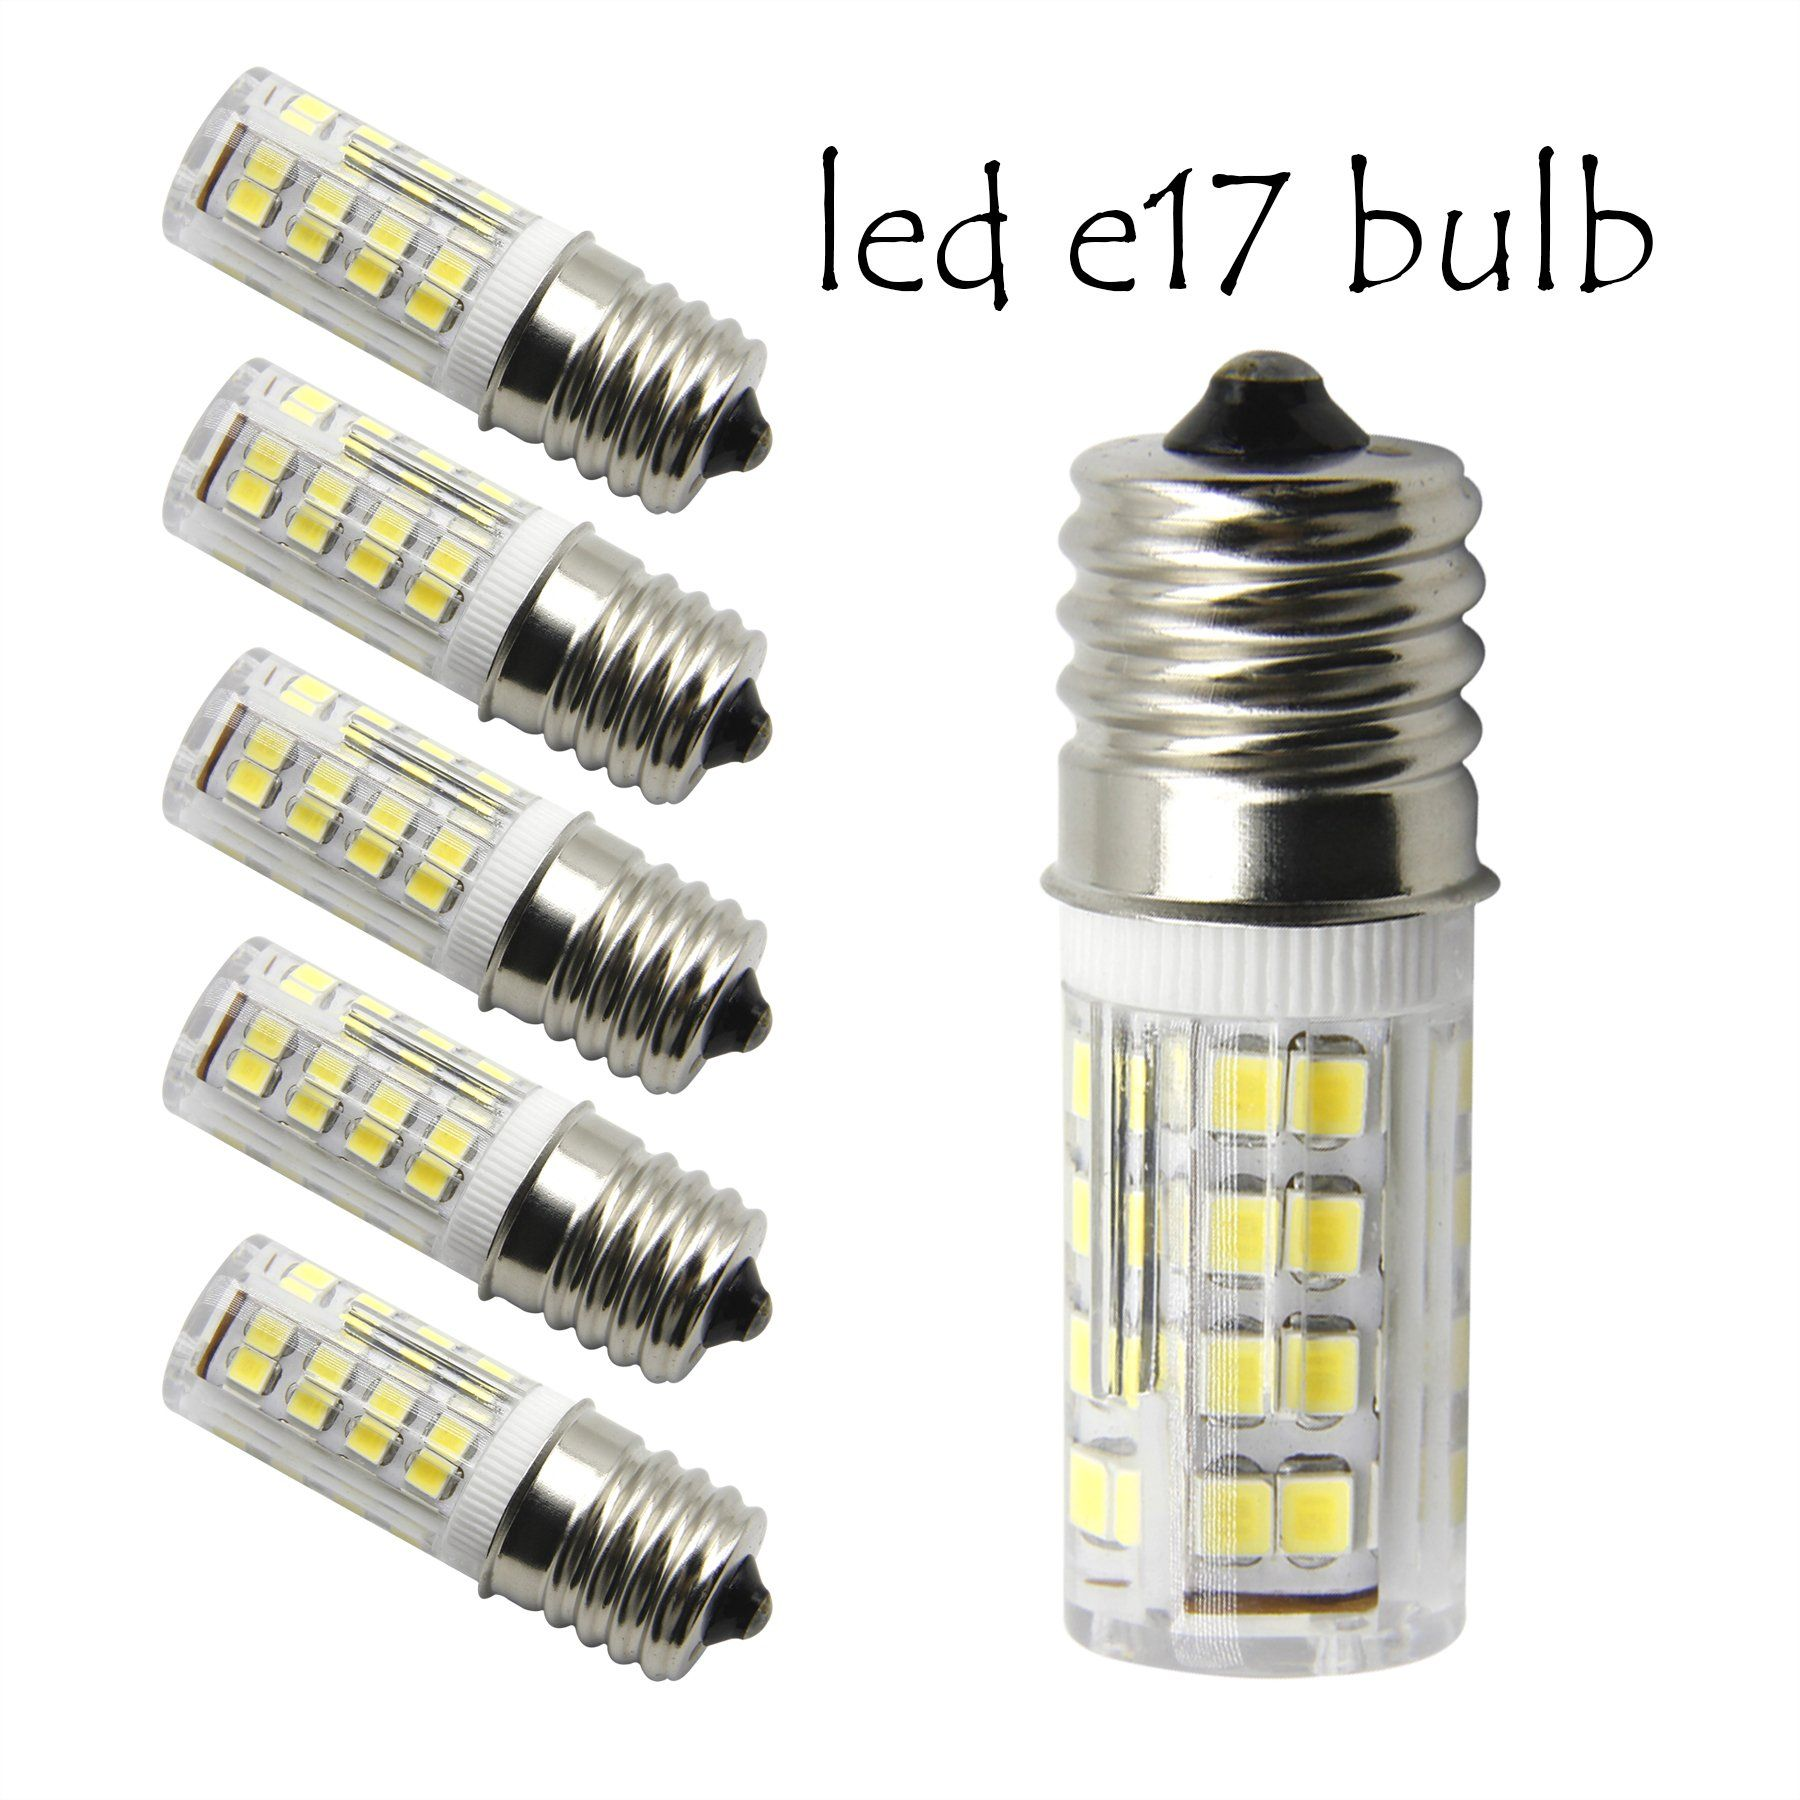 E17 Led T7 T8 Intermediate Base Led Appliance Bulb T8 T7 Lightbulb Dimmable 110 Volt 130v Pack Of 2 Microwave Oven Light Bulbsdayl Light Bulb Bulb Light Bulbs